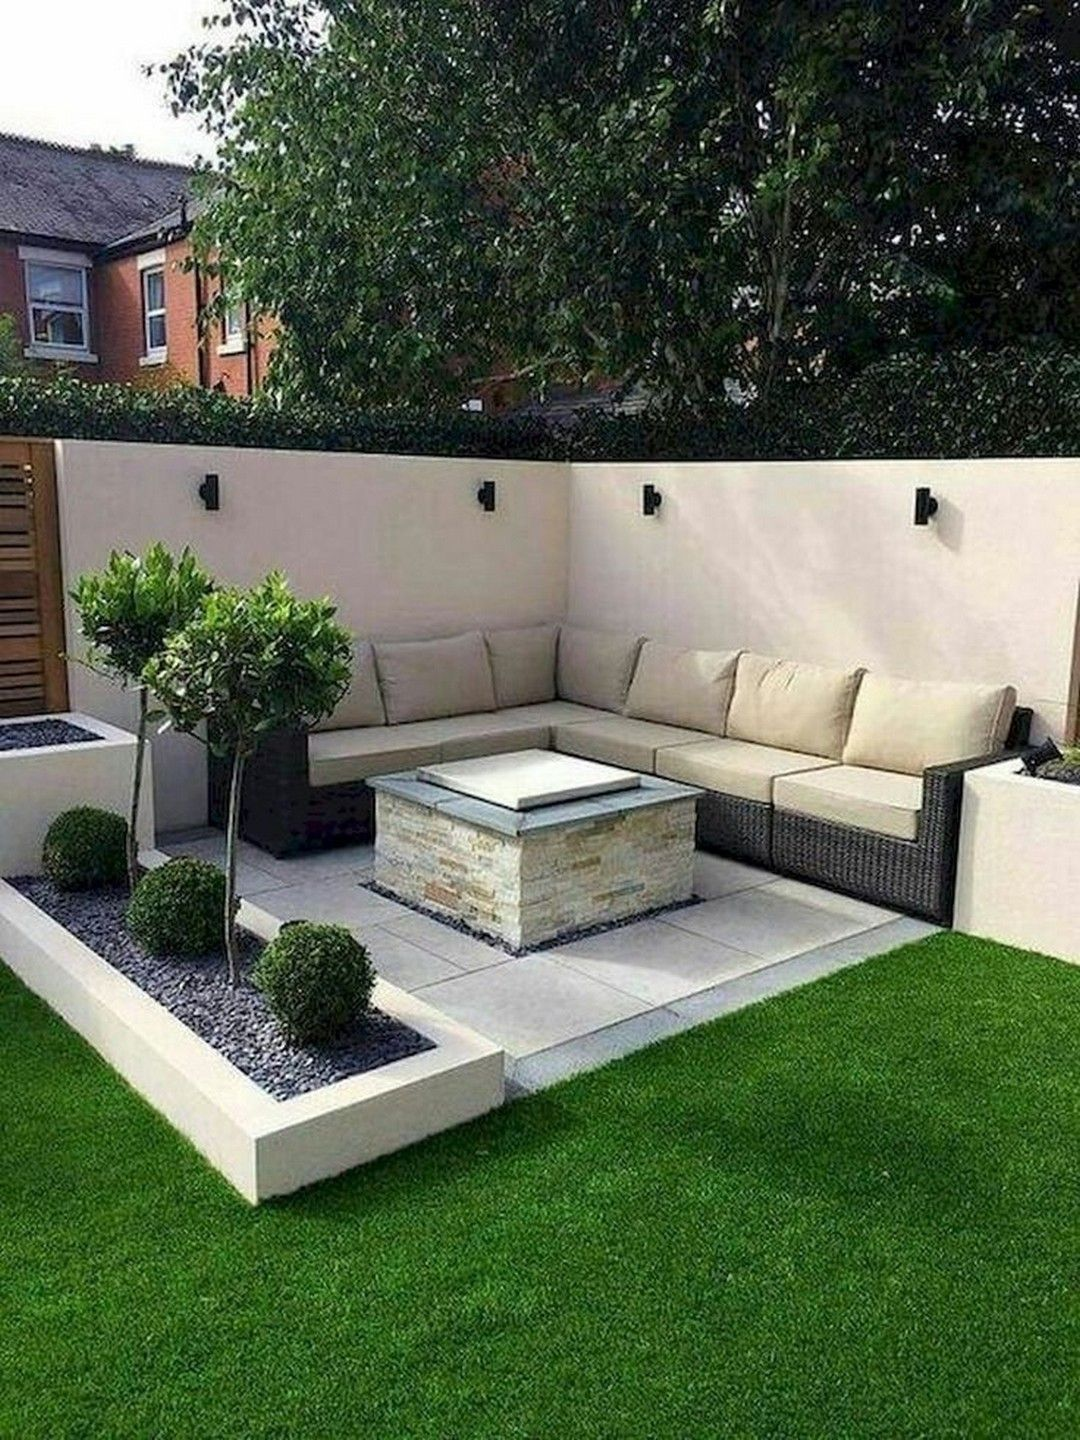 Cheap Backyard Makeover Ideas You Will Love In 2020 Backyard Landscaping Designs Small Backyard Landscaping Patio Landscaping